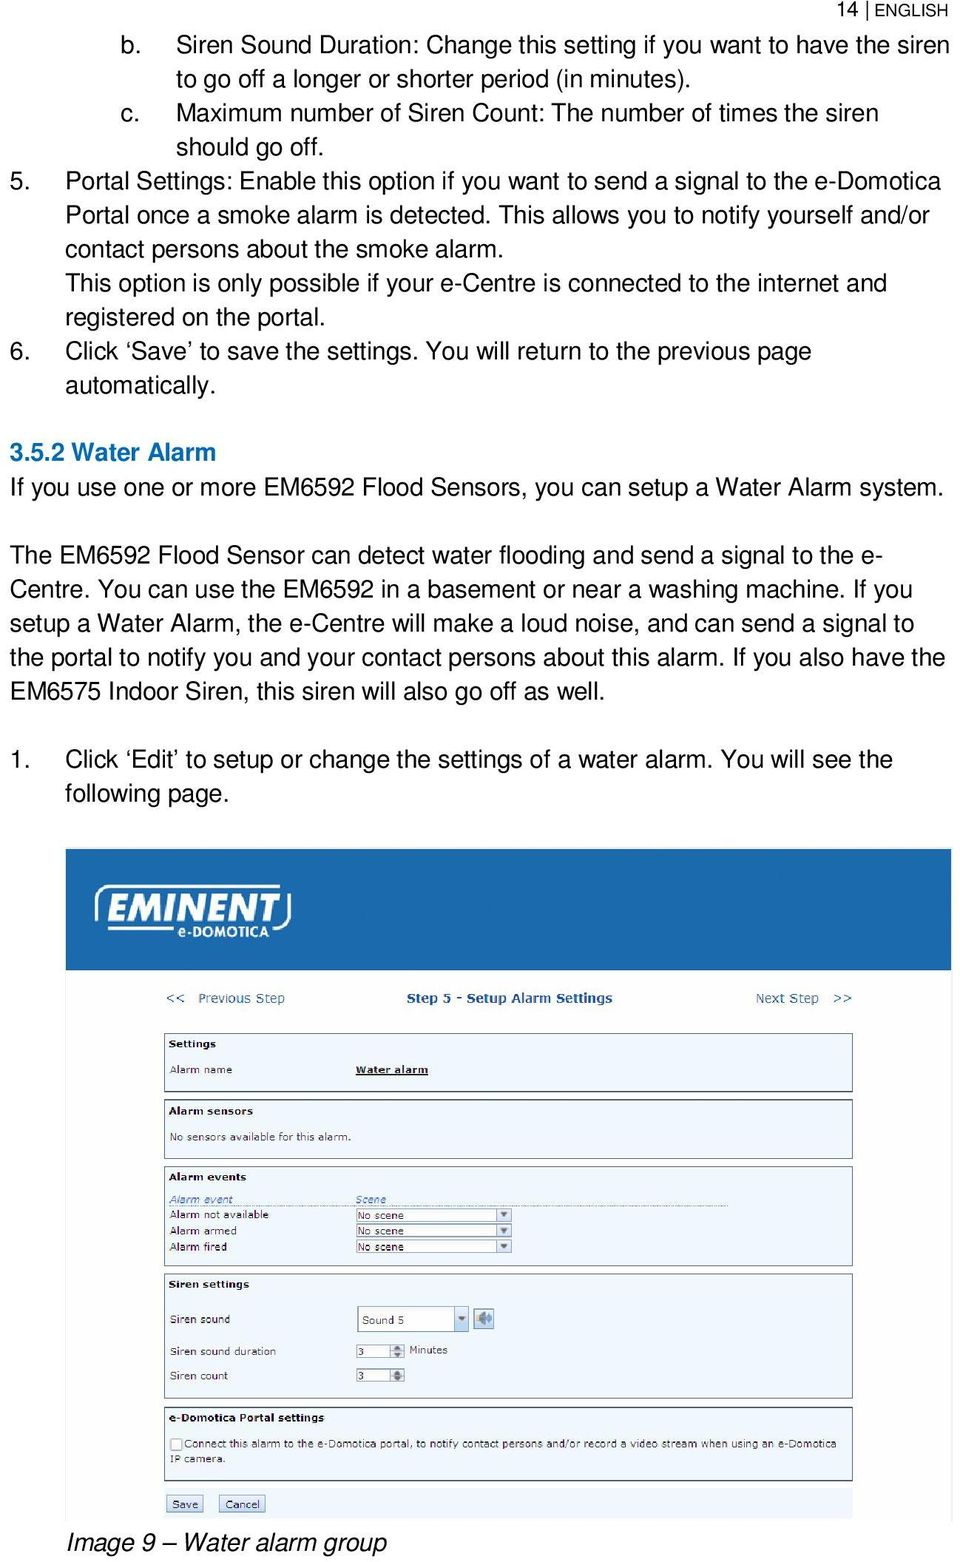 This allows you to notify yourself and/or contact persons about the smoke alarm. This option is only possible if your e-centre is connected to the internet and registered on the portal. 6.